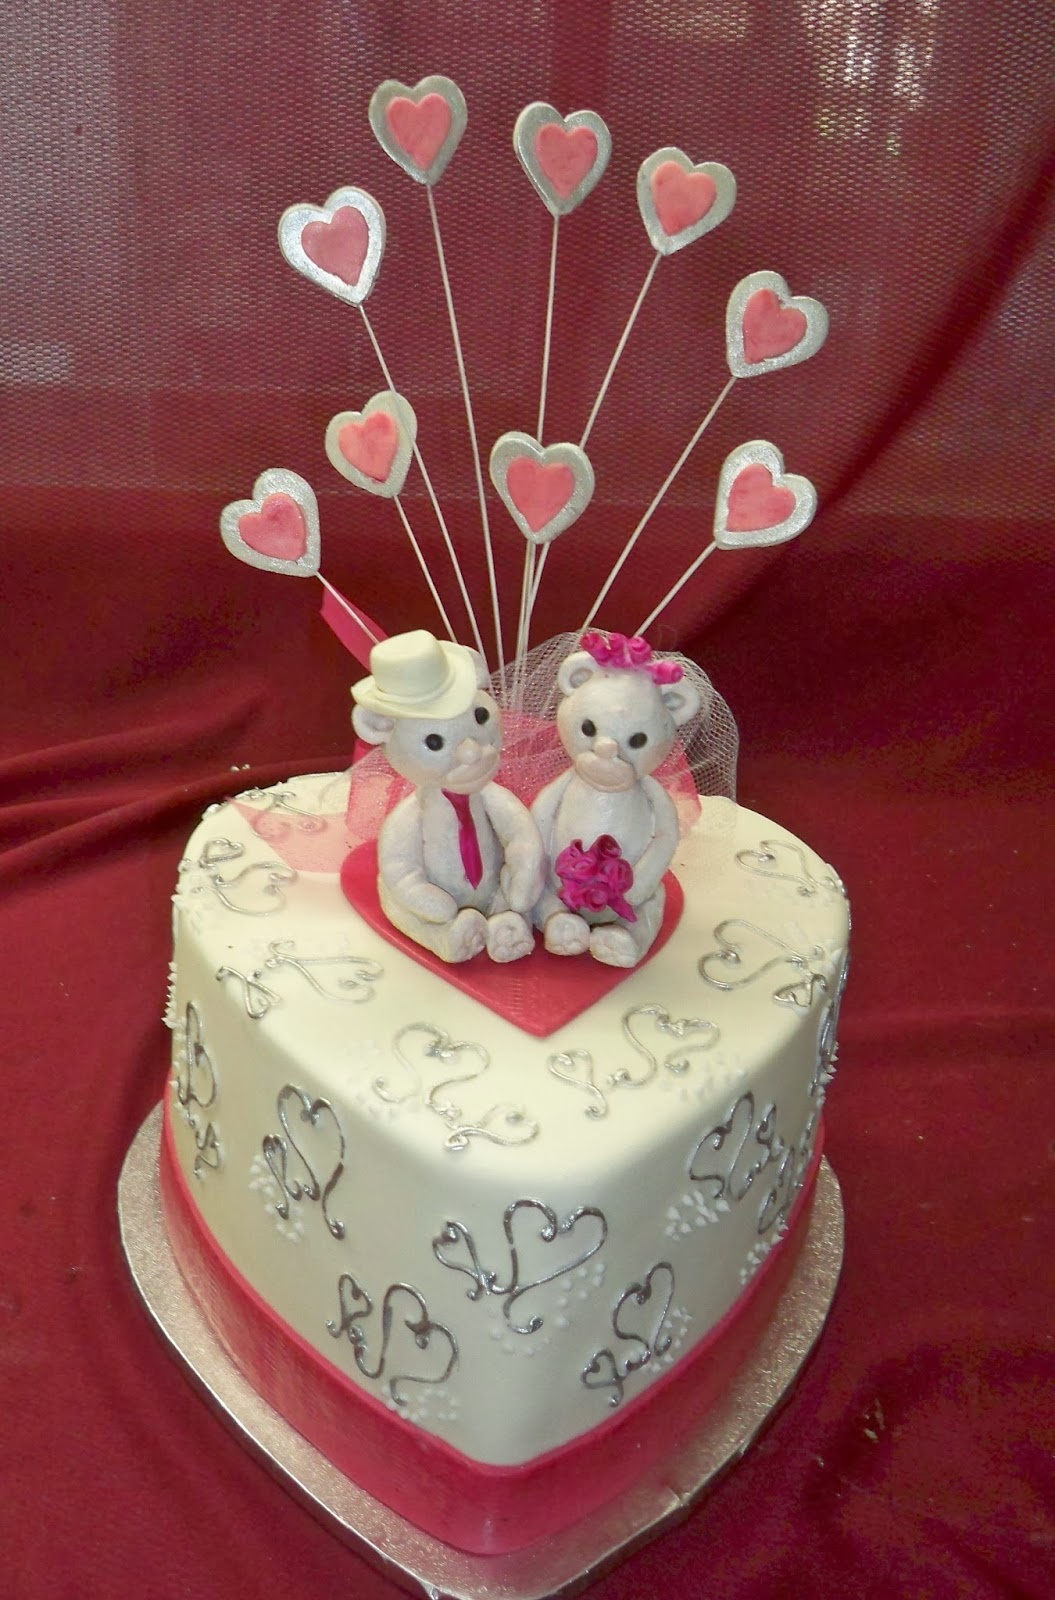 Silver hearts and hot pink ribbon with teddy bear cake